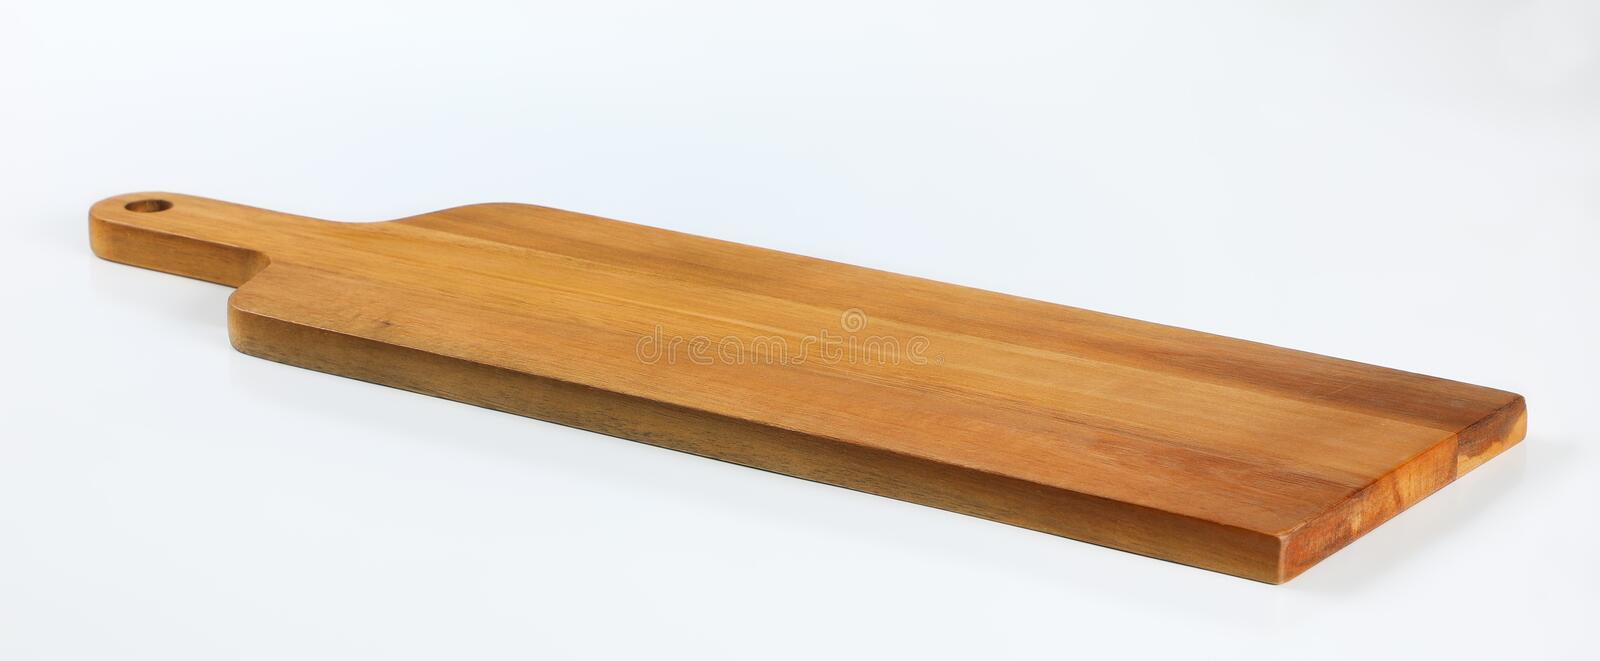 Wooden cutting board stock photography